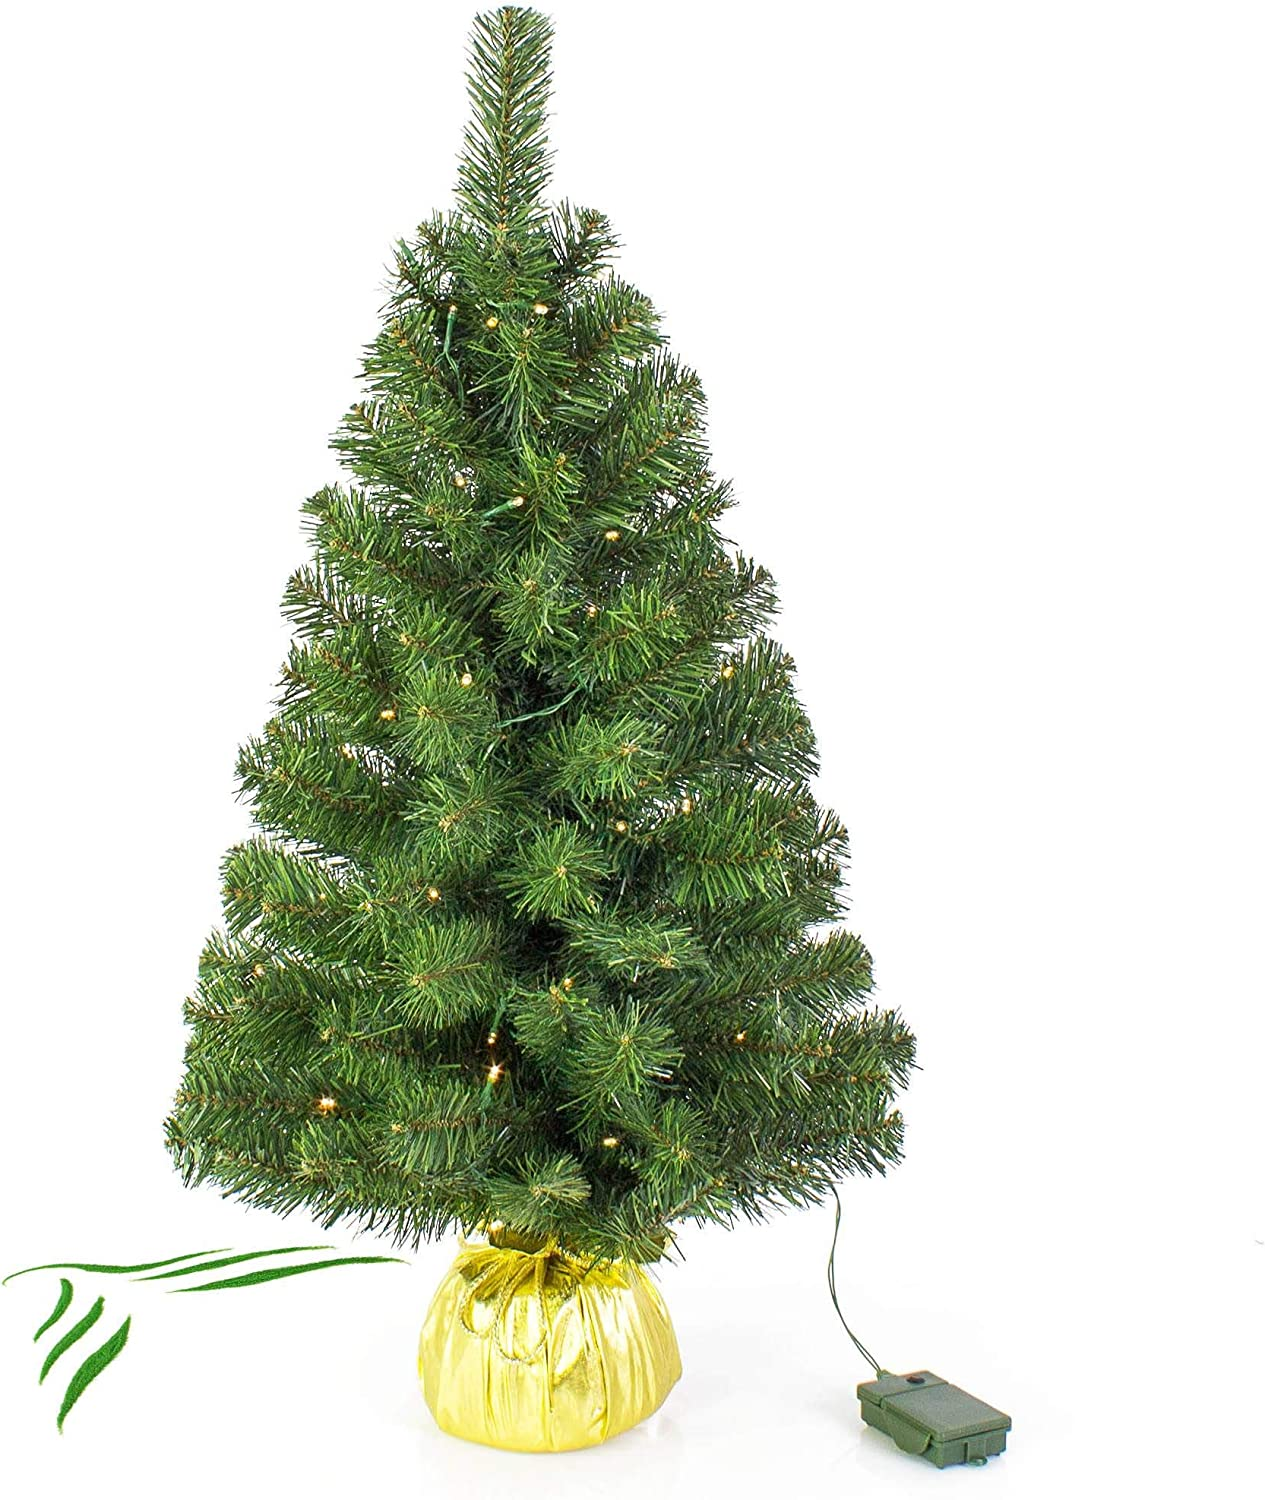 Guirlande De Sapin Noel D/écoration Pin Ornement /à Suspendre En Rotin Avec Fleurs D/écoration De No/ël Ext/érieur 240 branche tips Guirlande De No/ël Verte Artificielle De 9FT Rotin De No/ël Artificiel